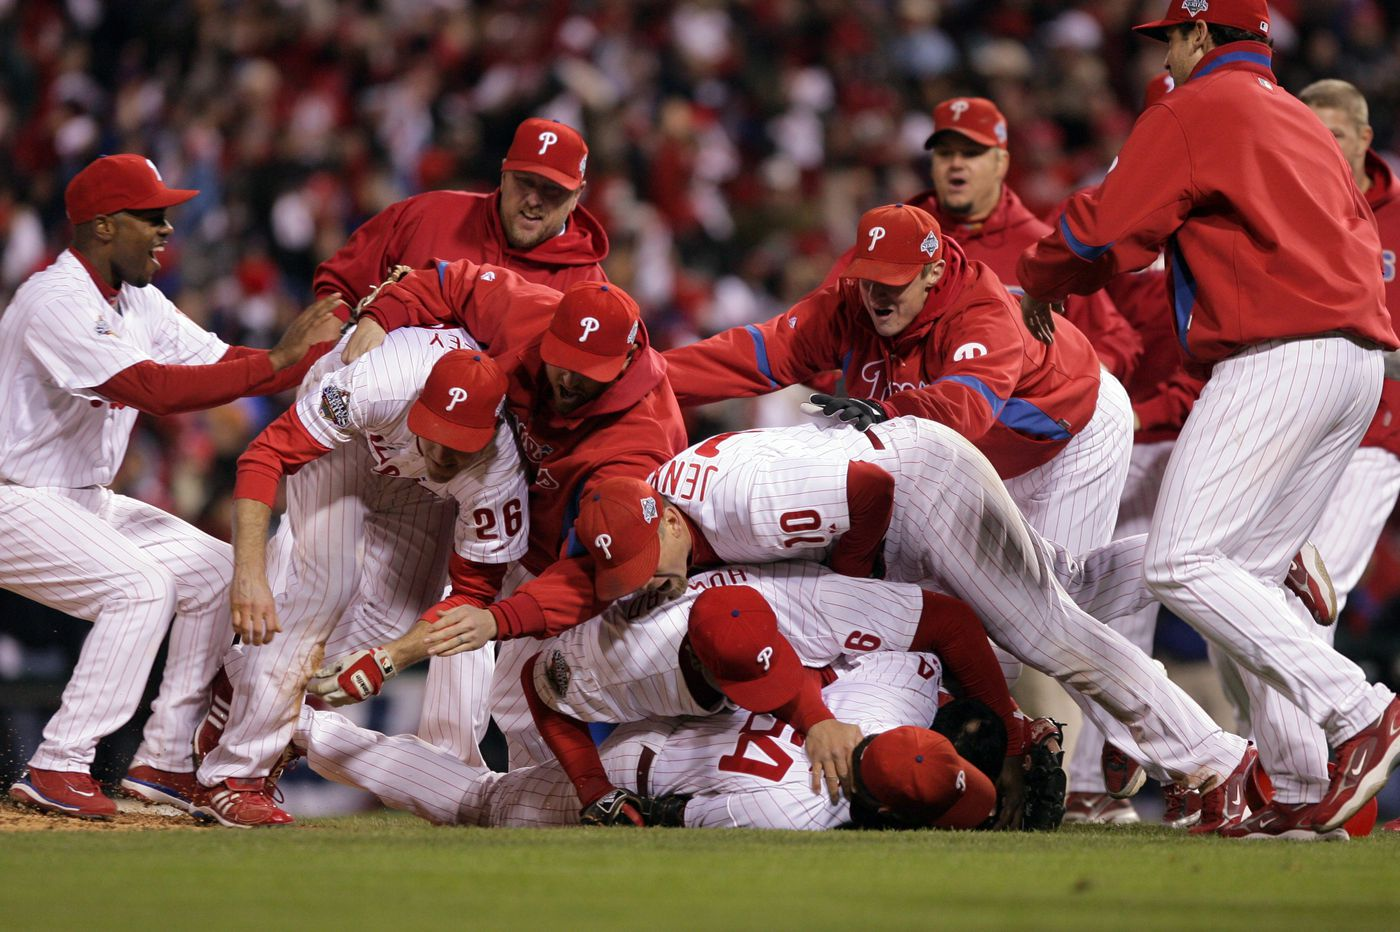 The Phillies' 2008 World Series championship: Tell us what you remember most